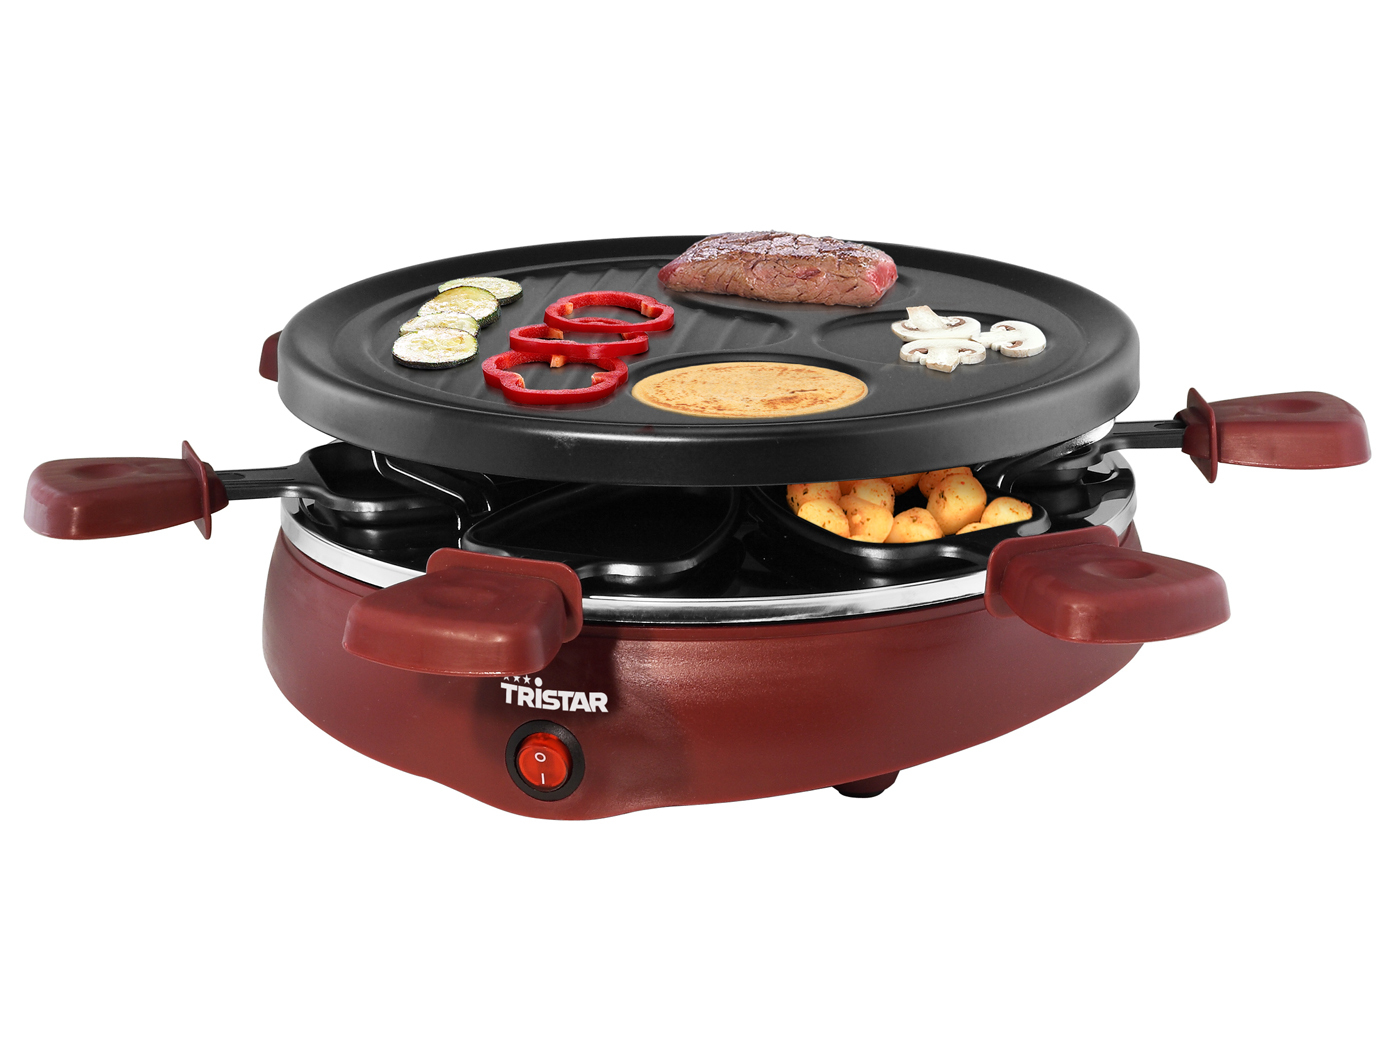 Grill Tischgrill Crepes Omelett Raclette Partygrill 6 Personen mit Crepesfläche